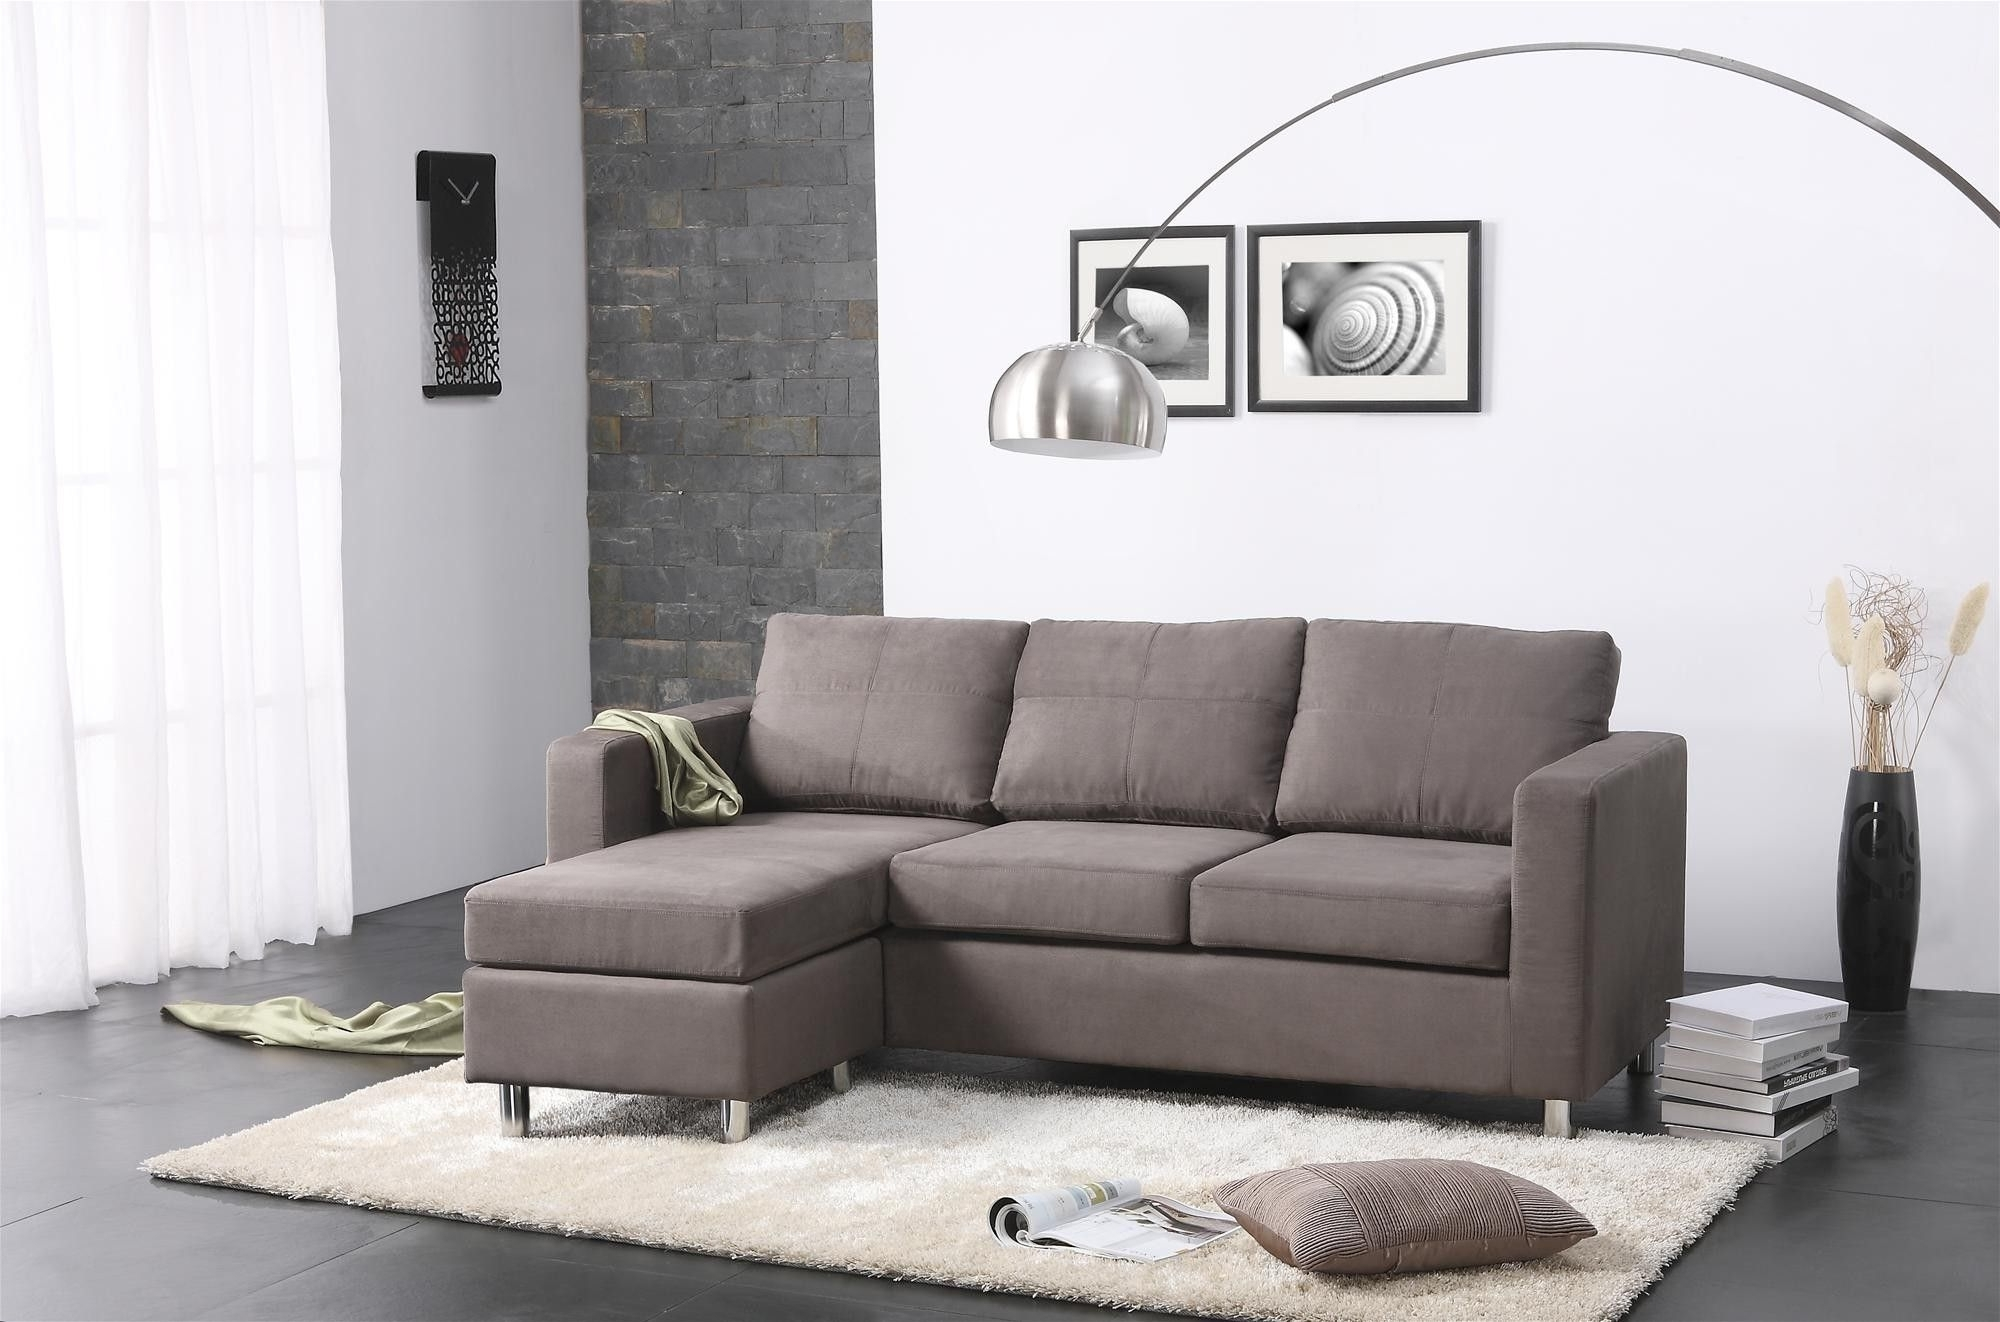 Widely Used Canada Sectional Sofas For Small Spaces Regarding Amazing Modern Small Spaces Living Room Decors With Grey Sectional (View 20 of 20)